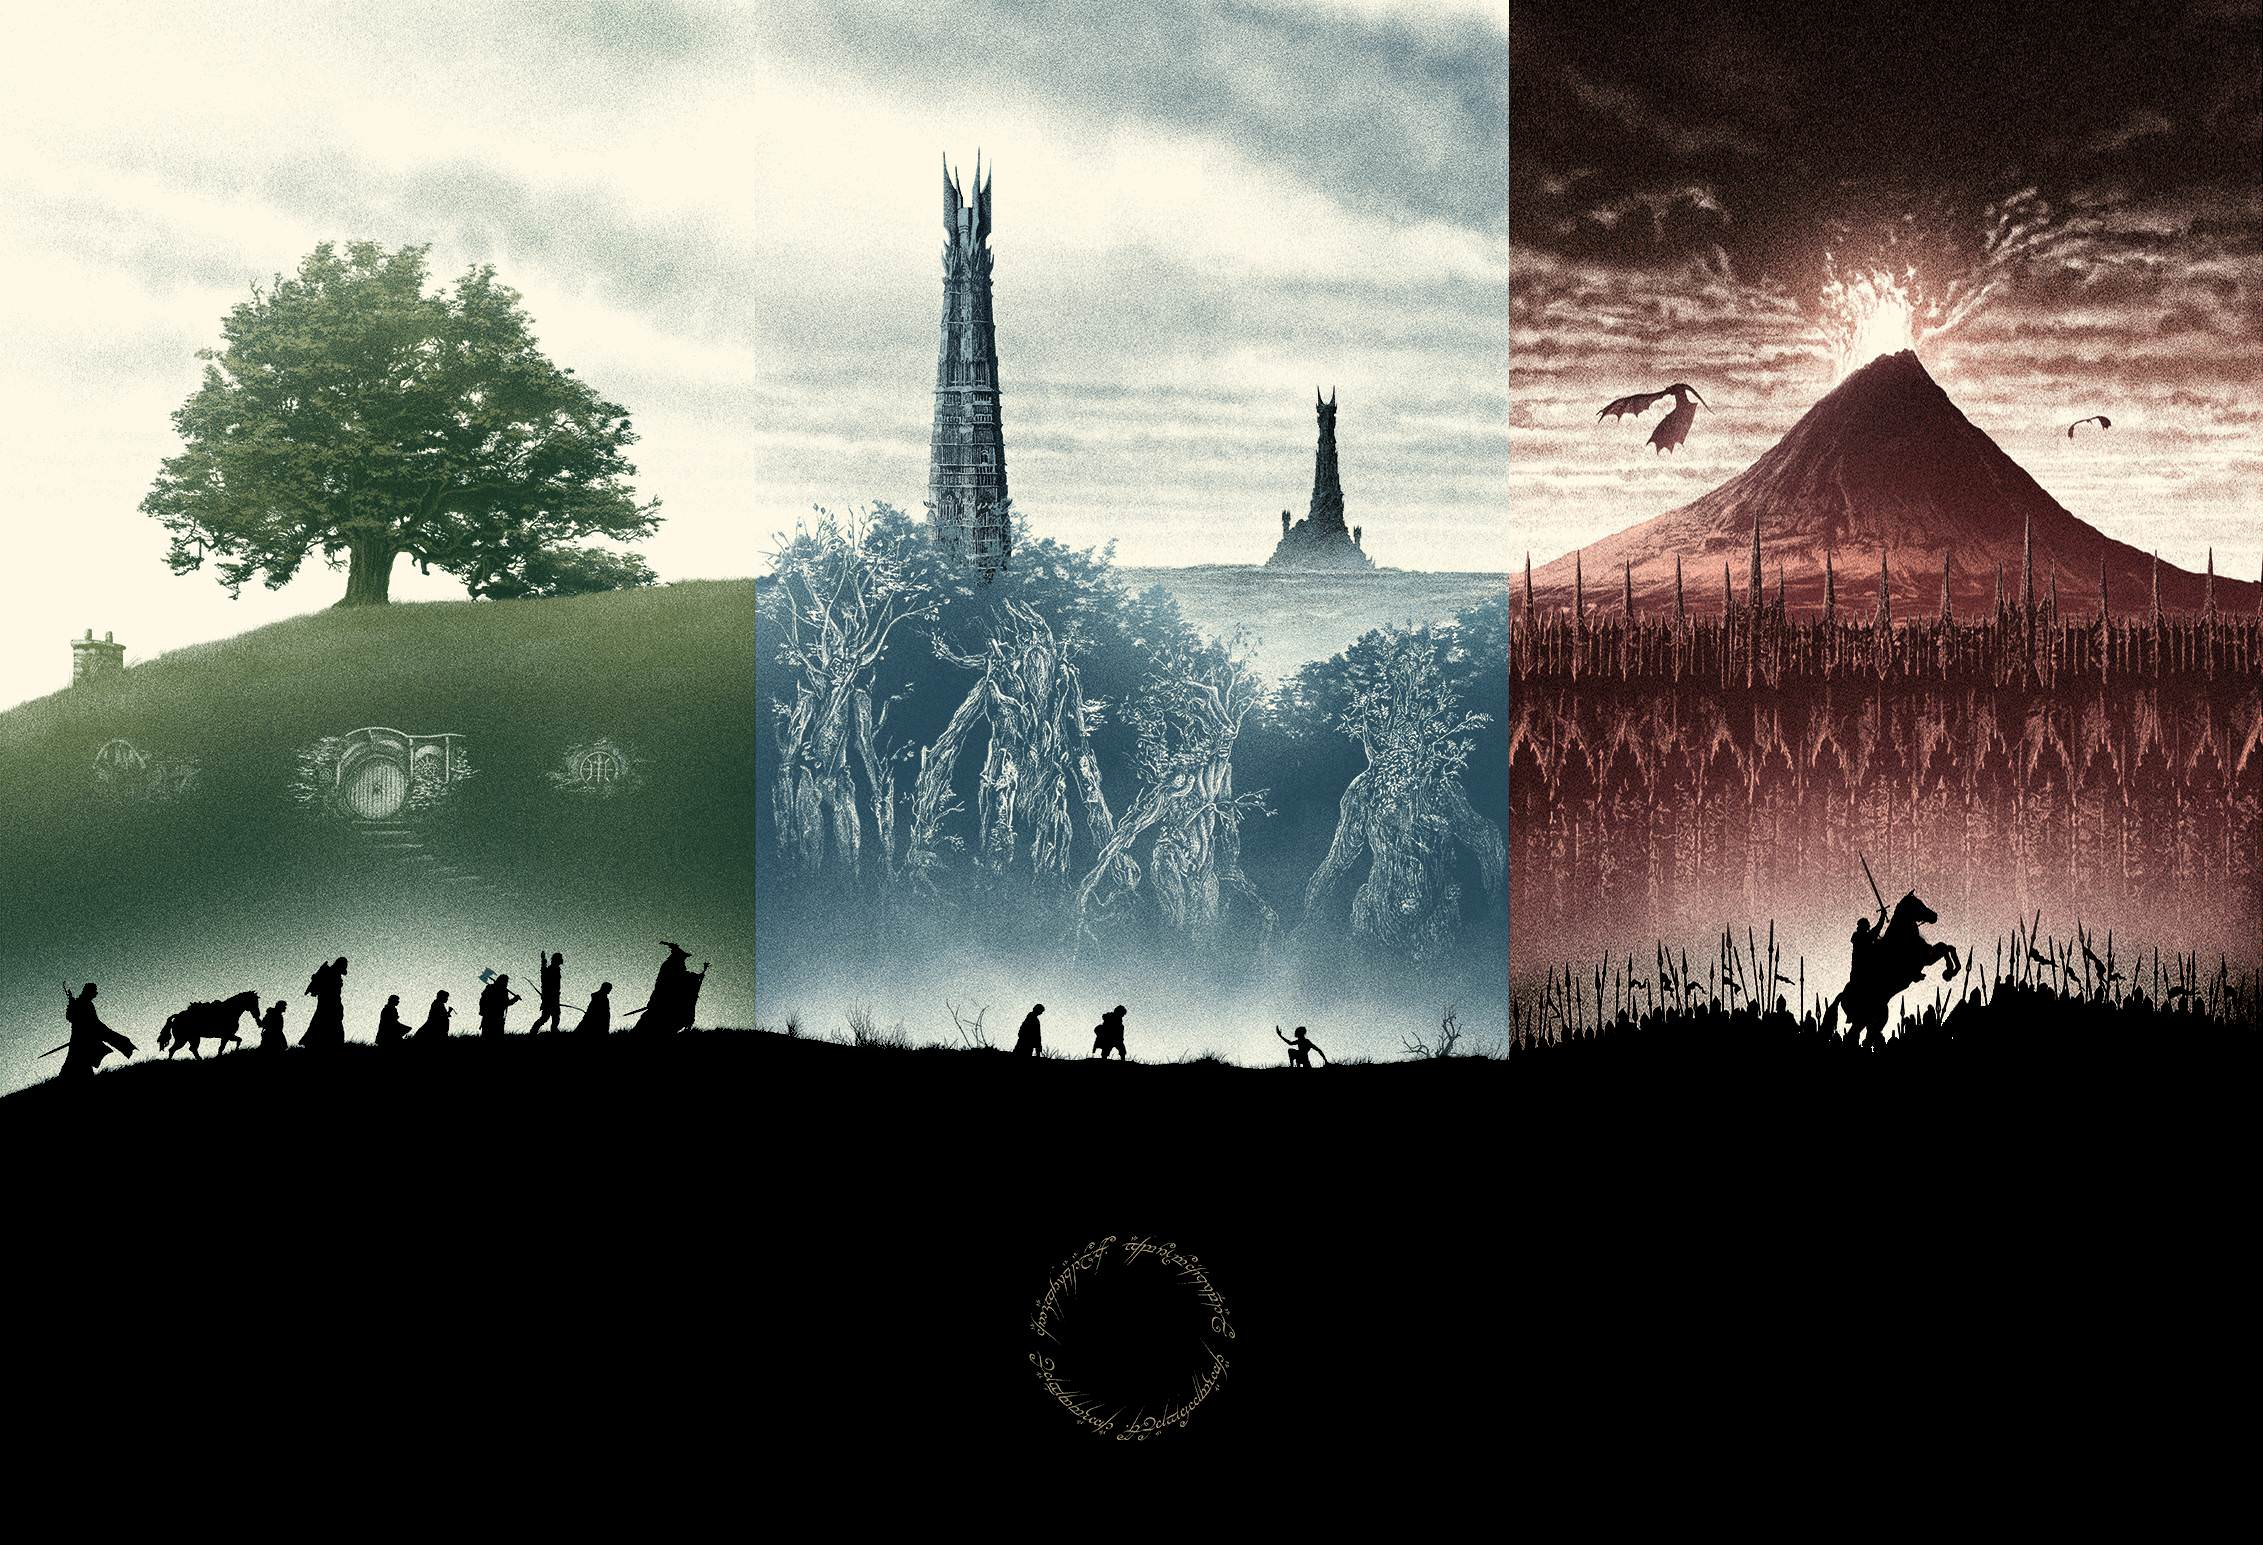 Lotr Book Wallpapers - Top Free Lotr Book Backgrounds - WallpaperAccess